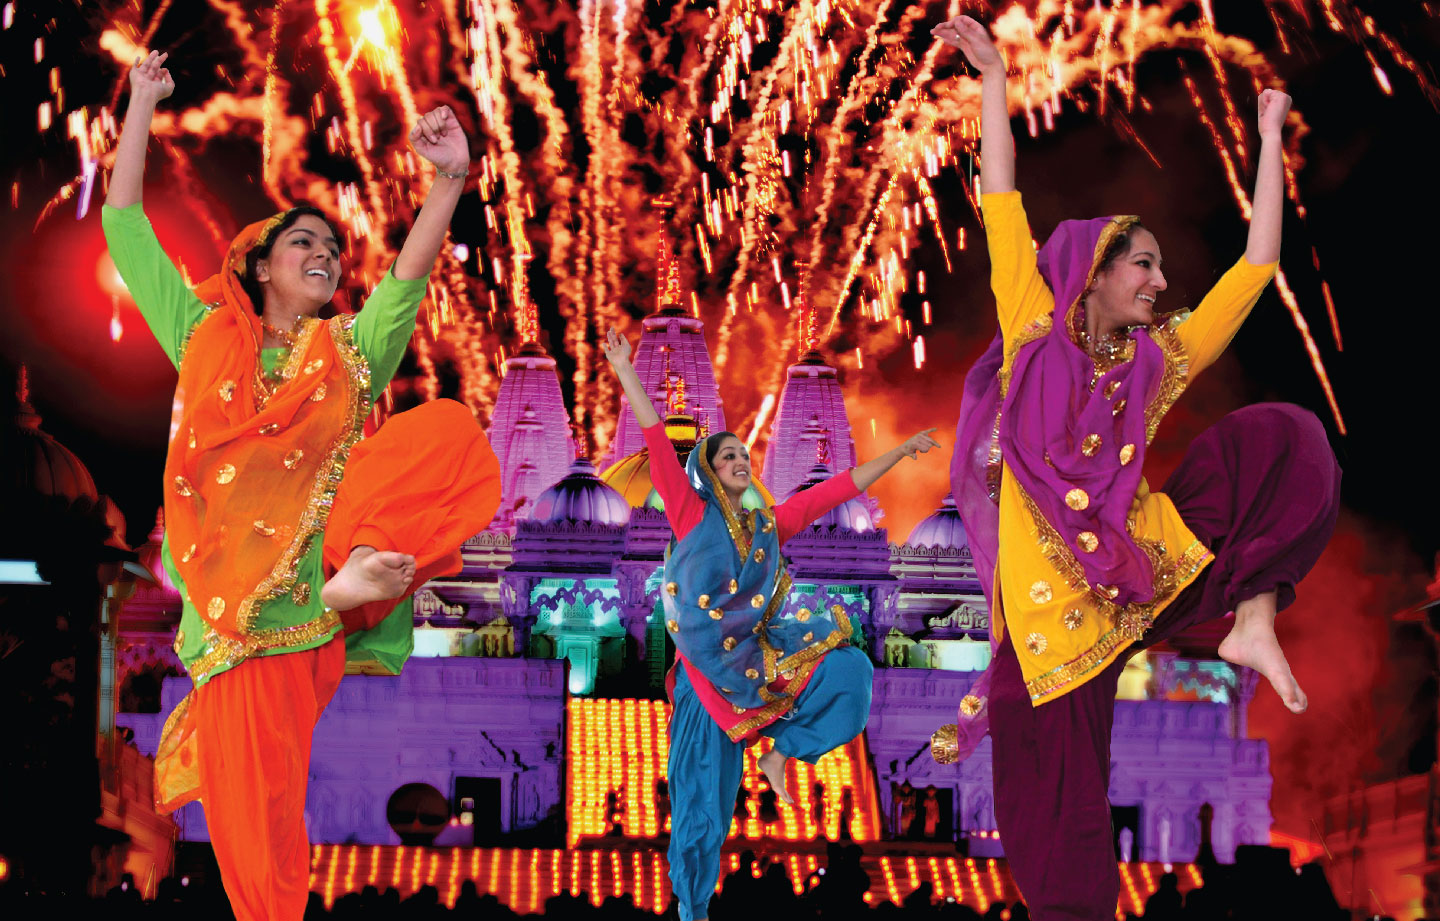 diwali festival in india essay 288 words short essay for kids on diwali festival diwali is one of the most important festivals of the hindus it is celebrated with great enthusiasm throughout india.